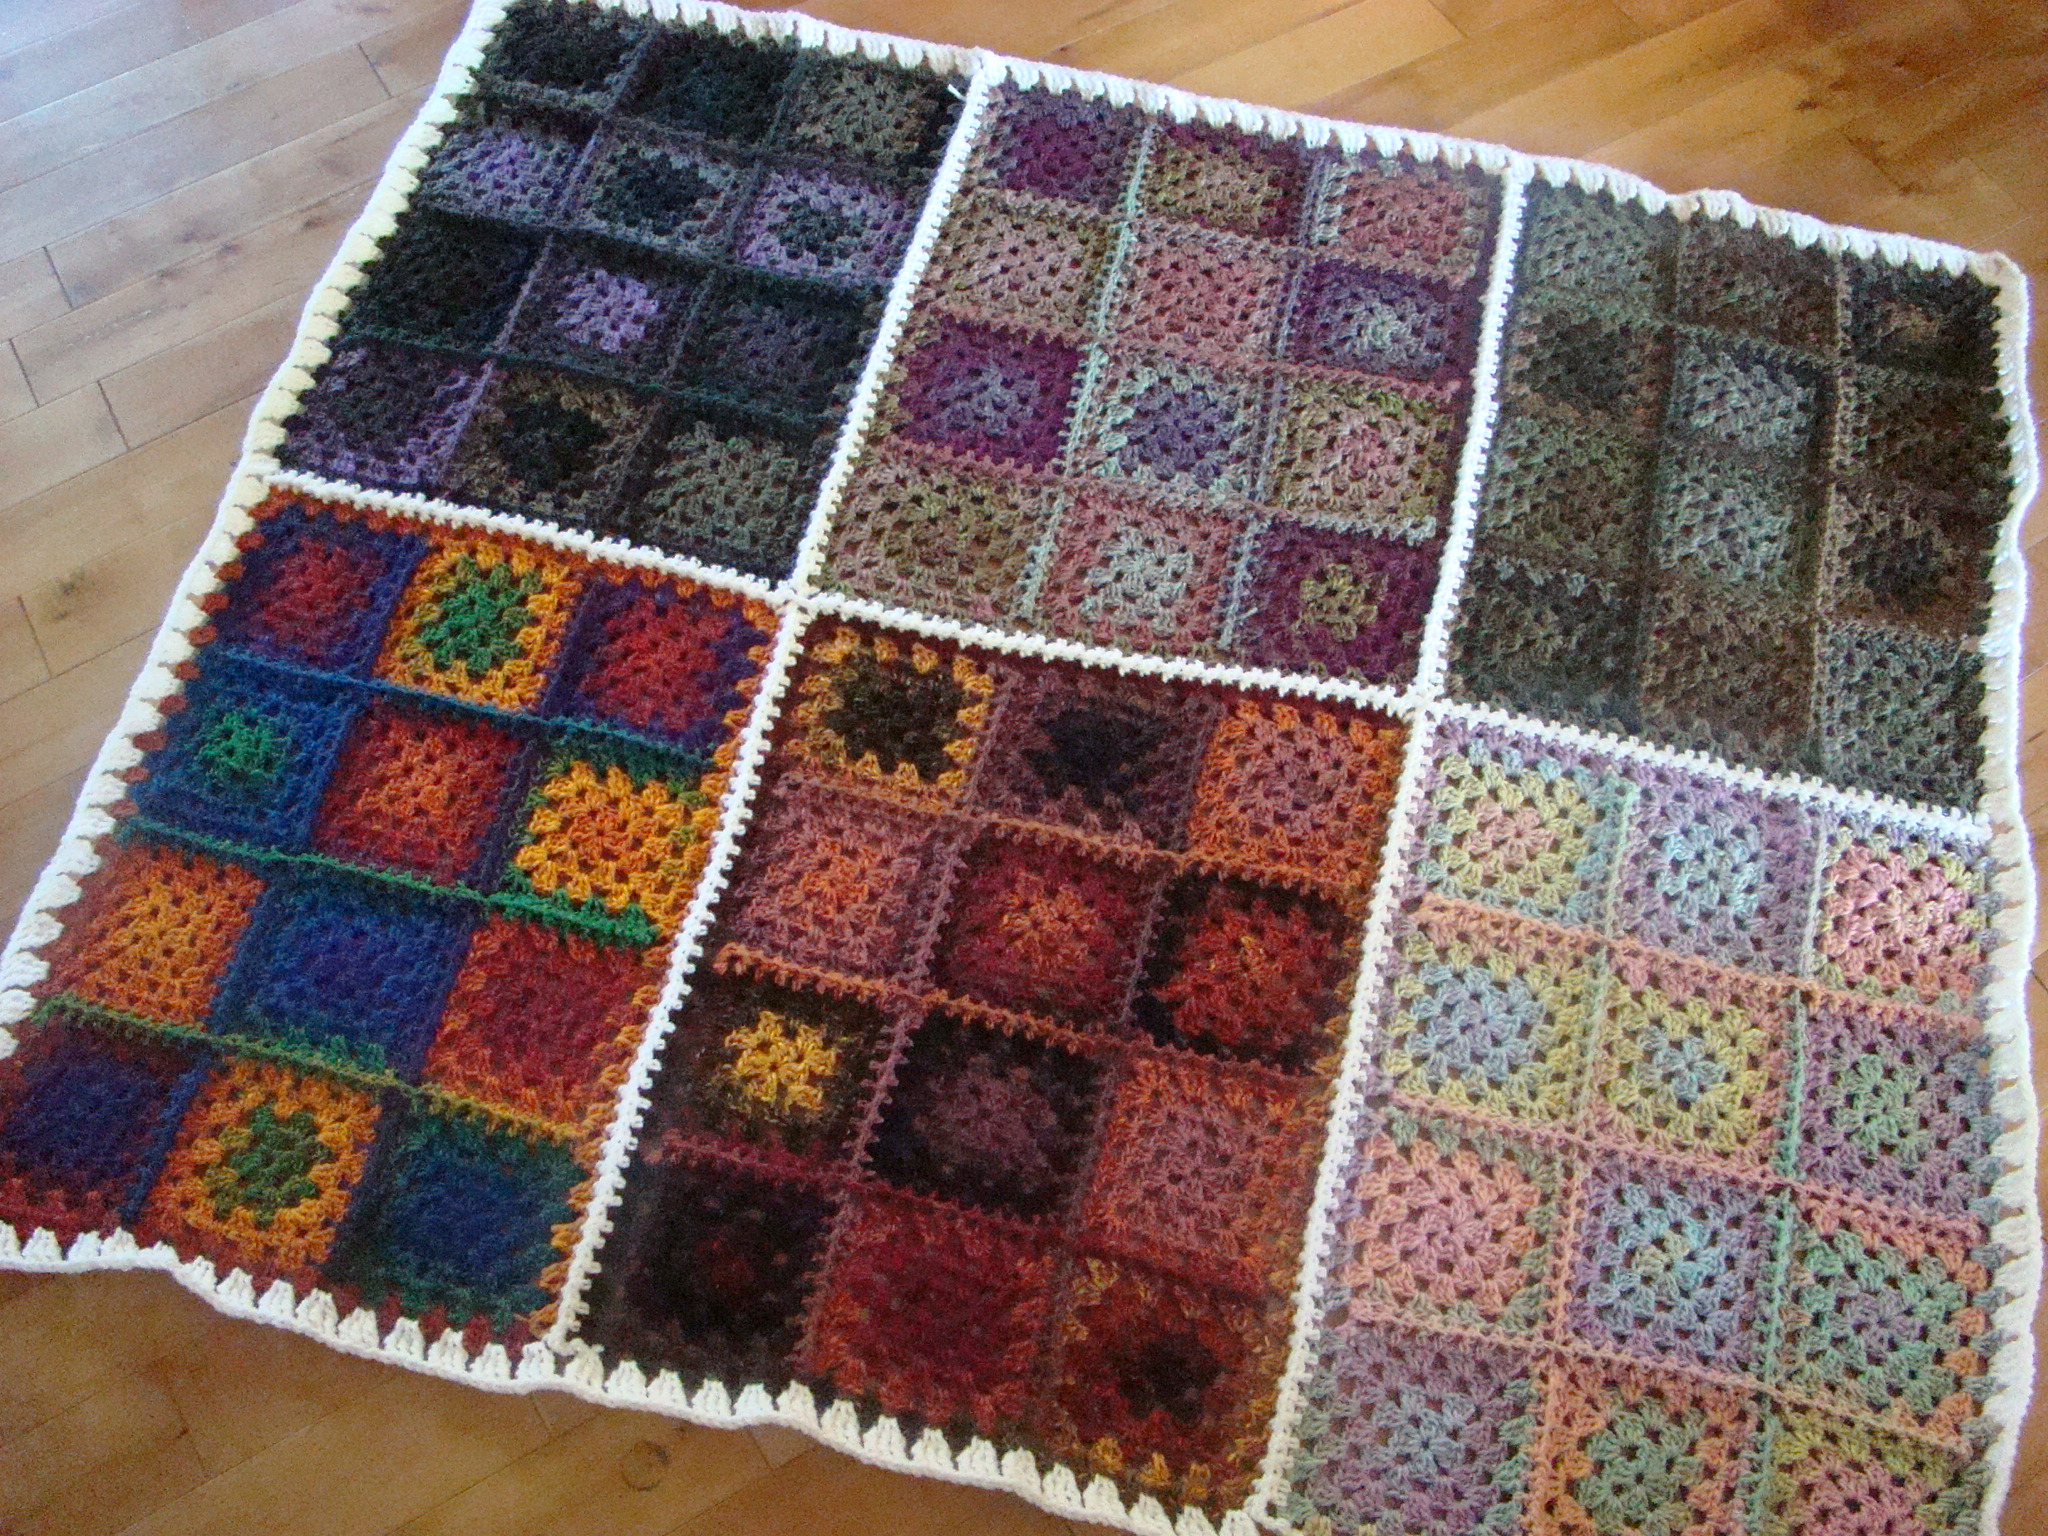 Bernat Mosaic Afghan Kits Exclusively By The Crochet Crowd Favecrafts